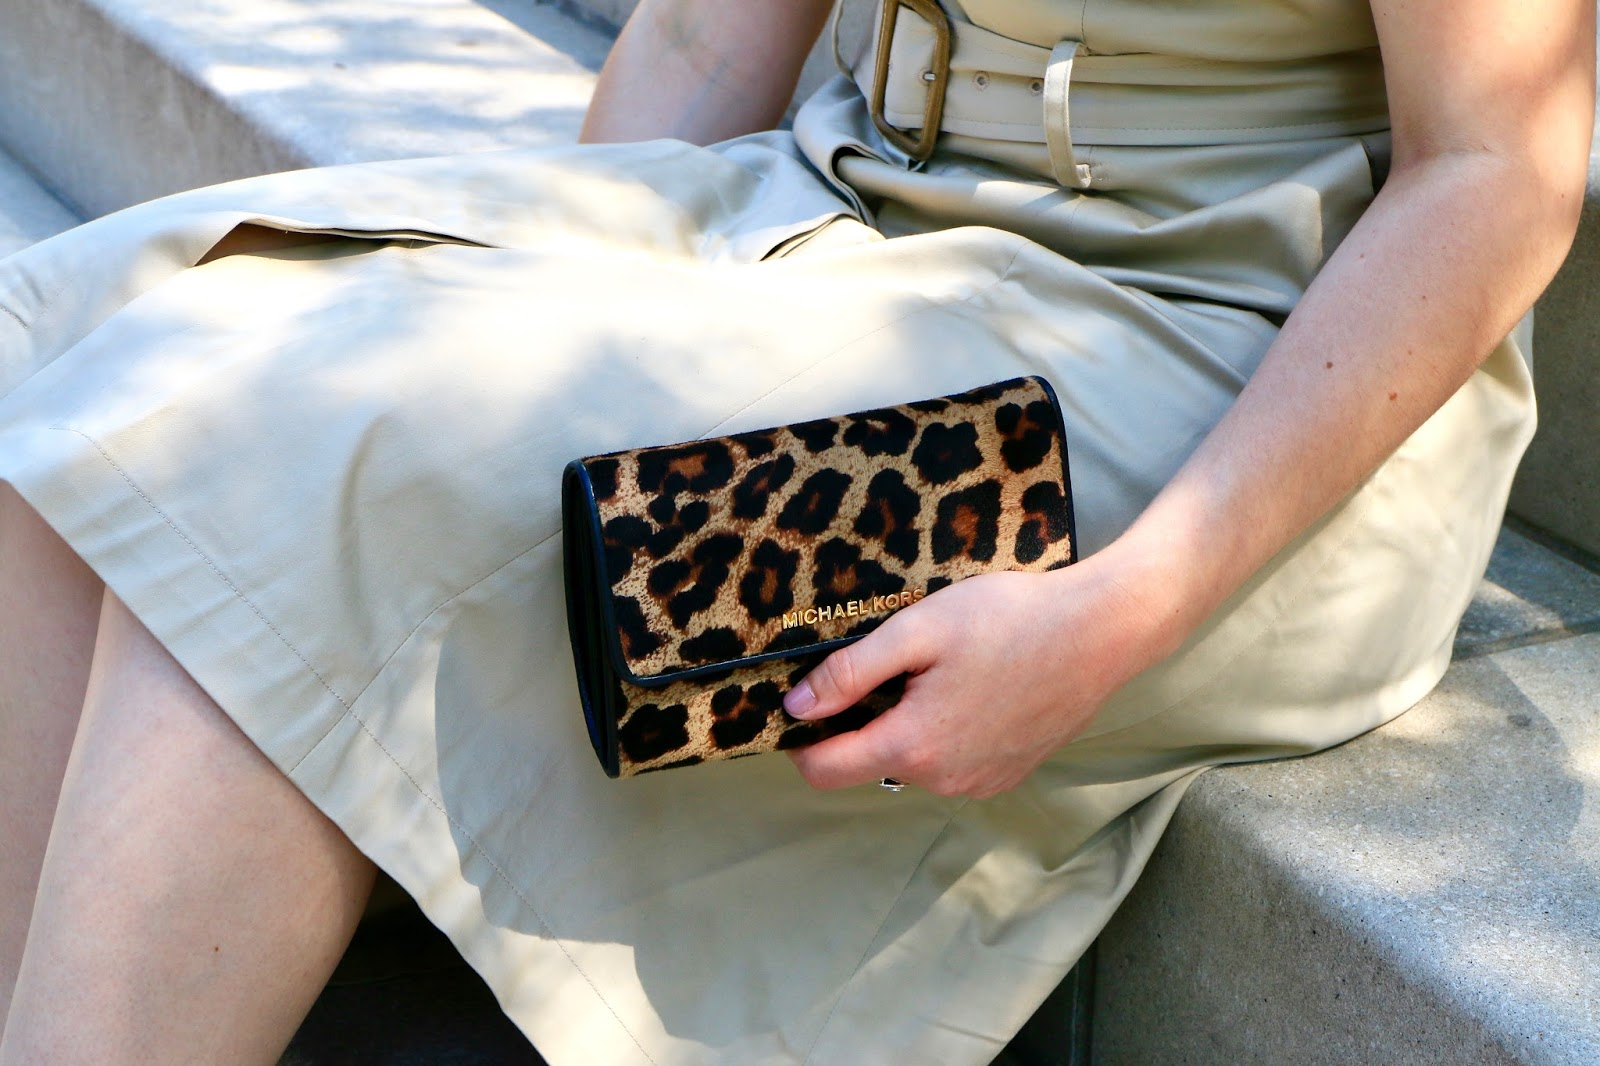 NYC Fashion blogger Kathleen Harper with a Michael Kors leopard clutch